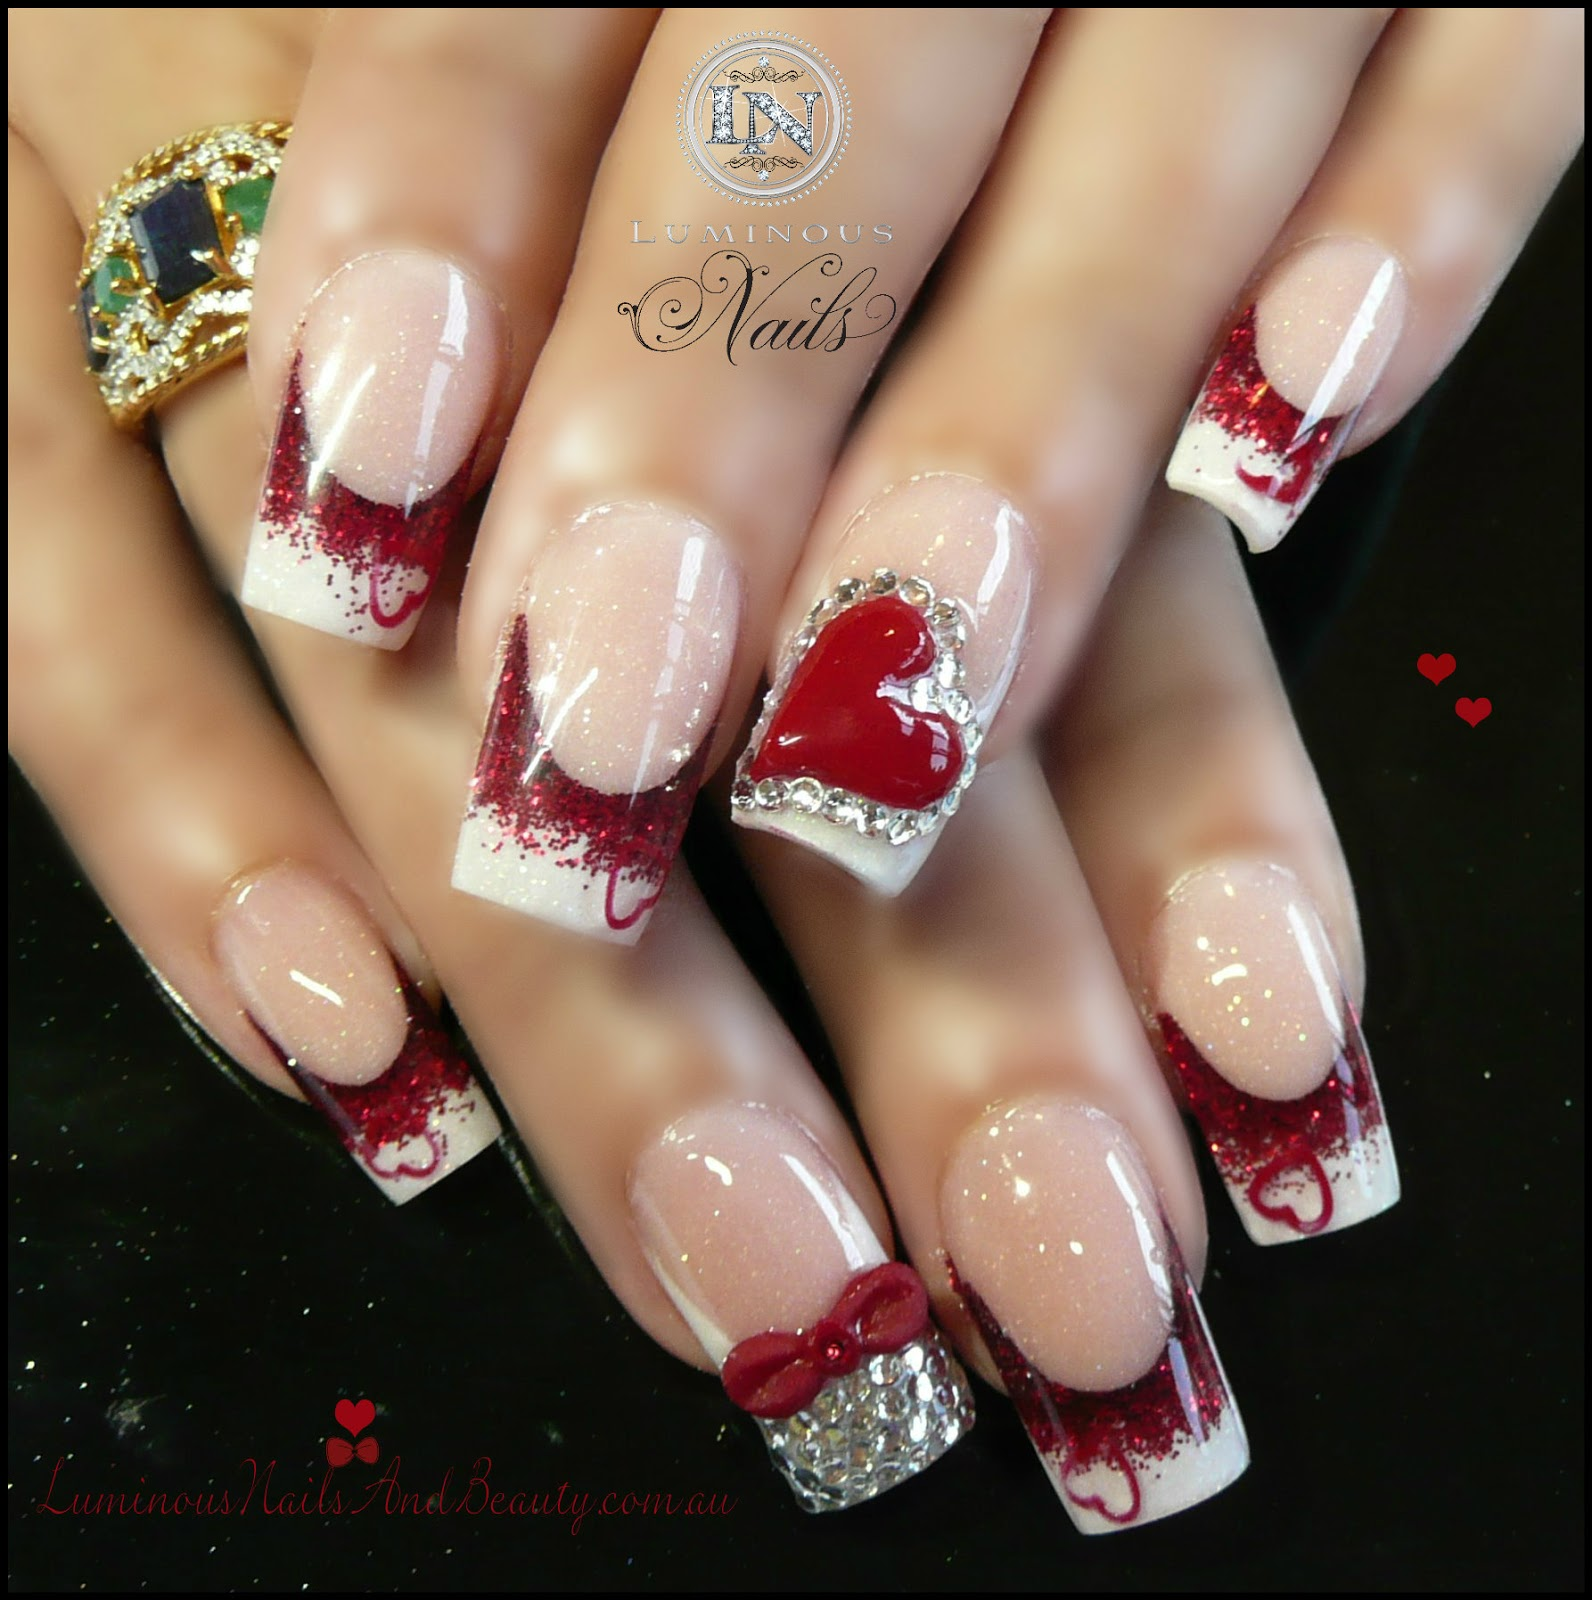 Red Nail Art: Luminous Nails: February 2013